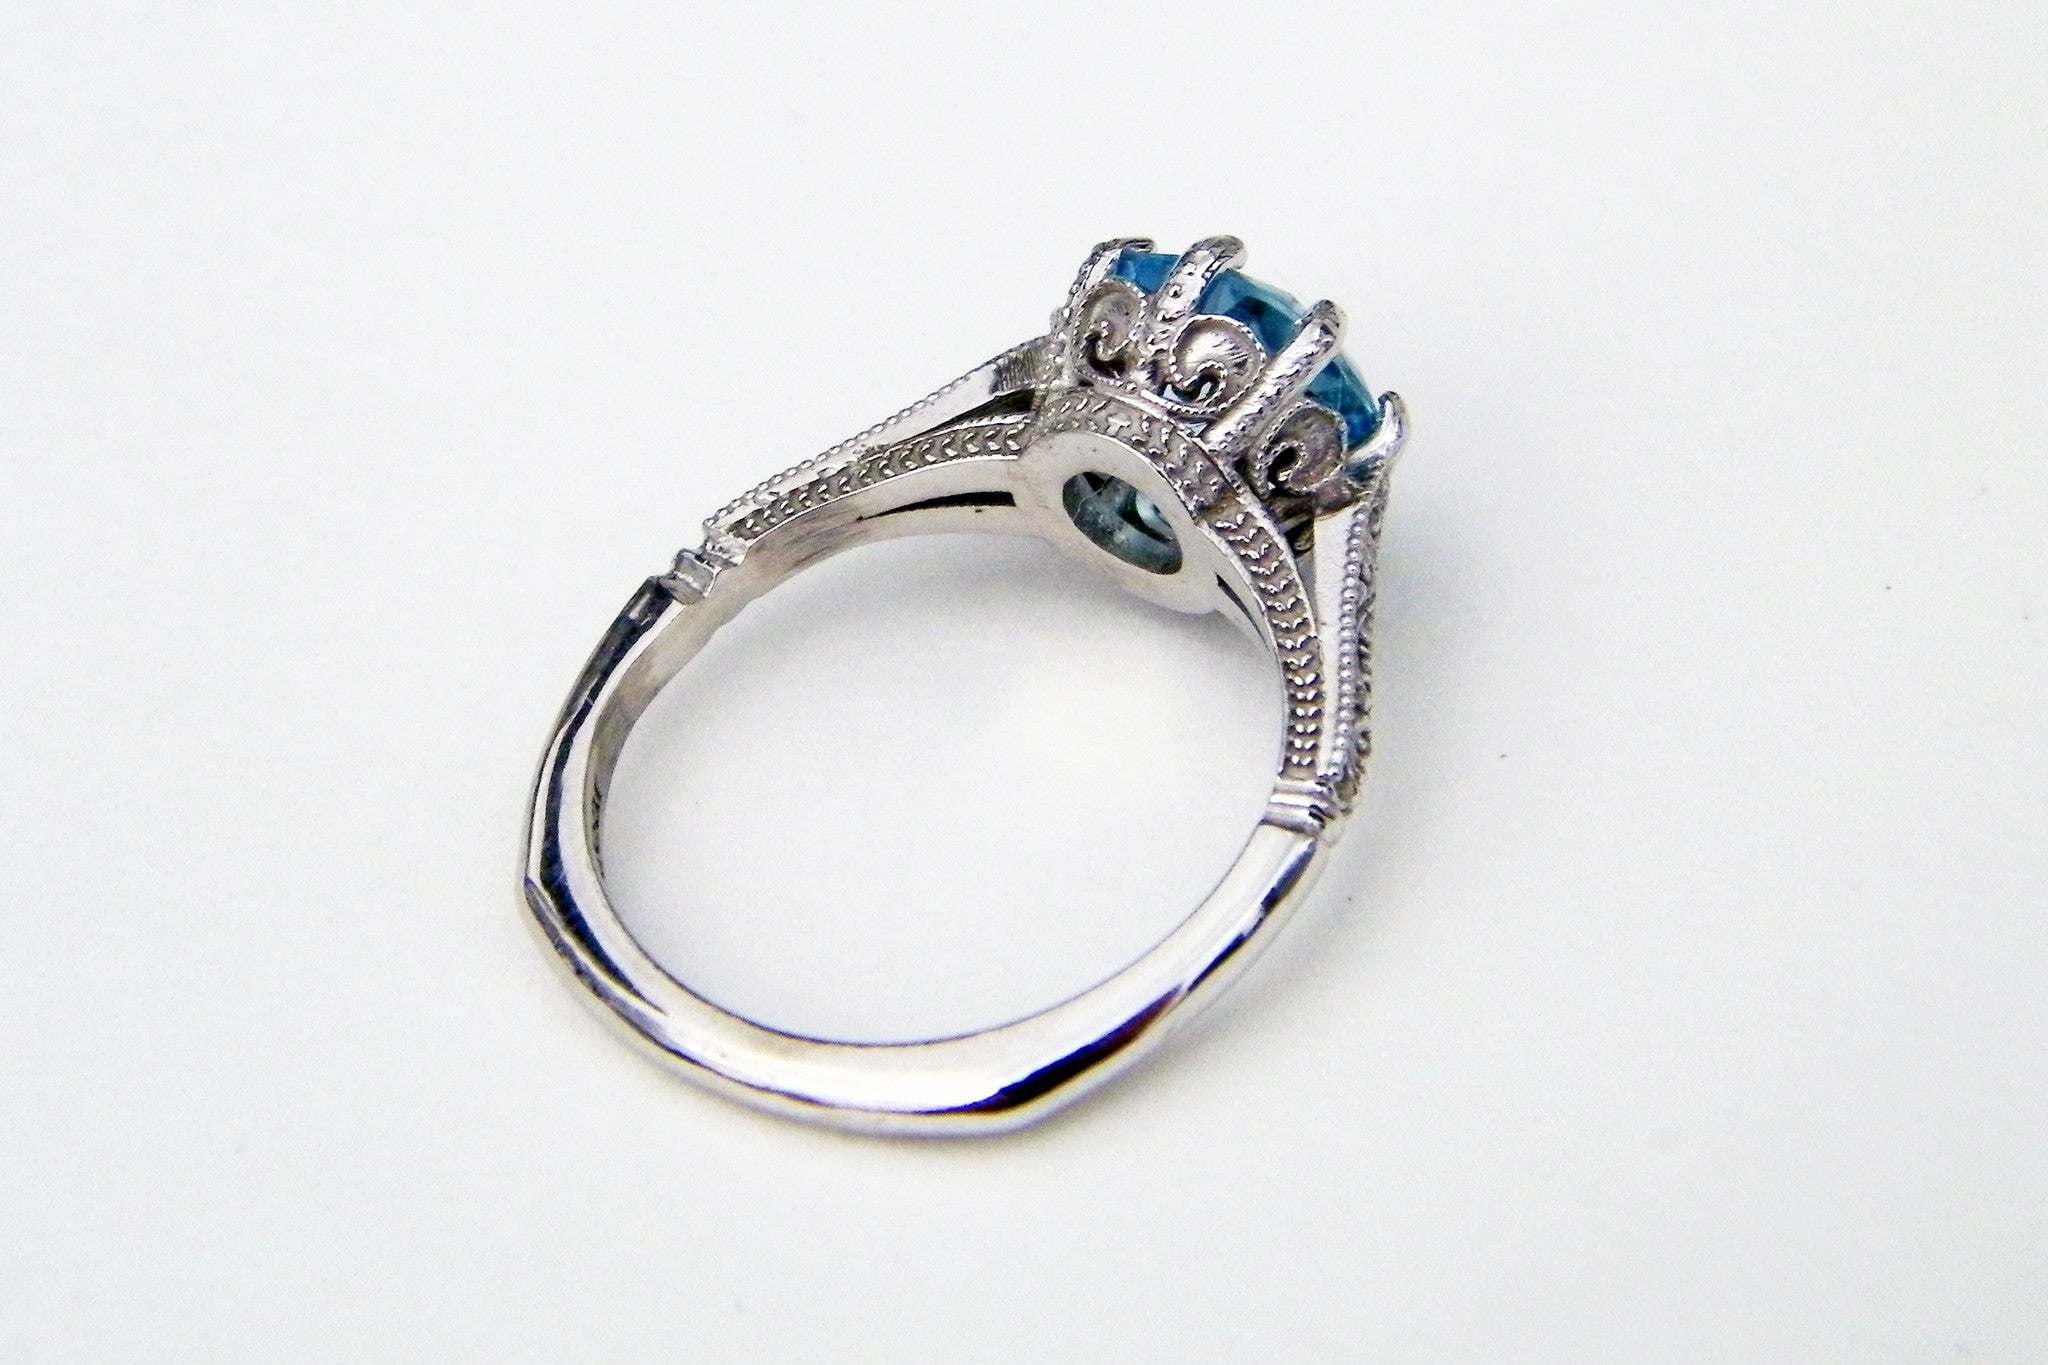 vintage solitaire blue topaz engagement ring ambrosia jewelry design